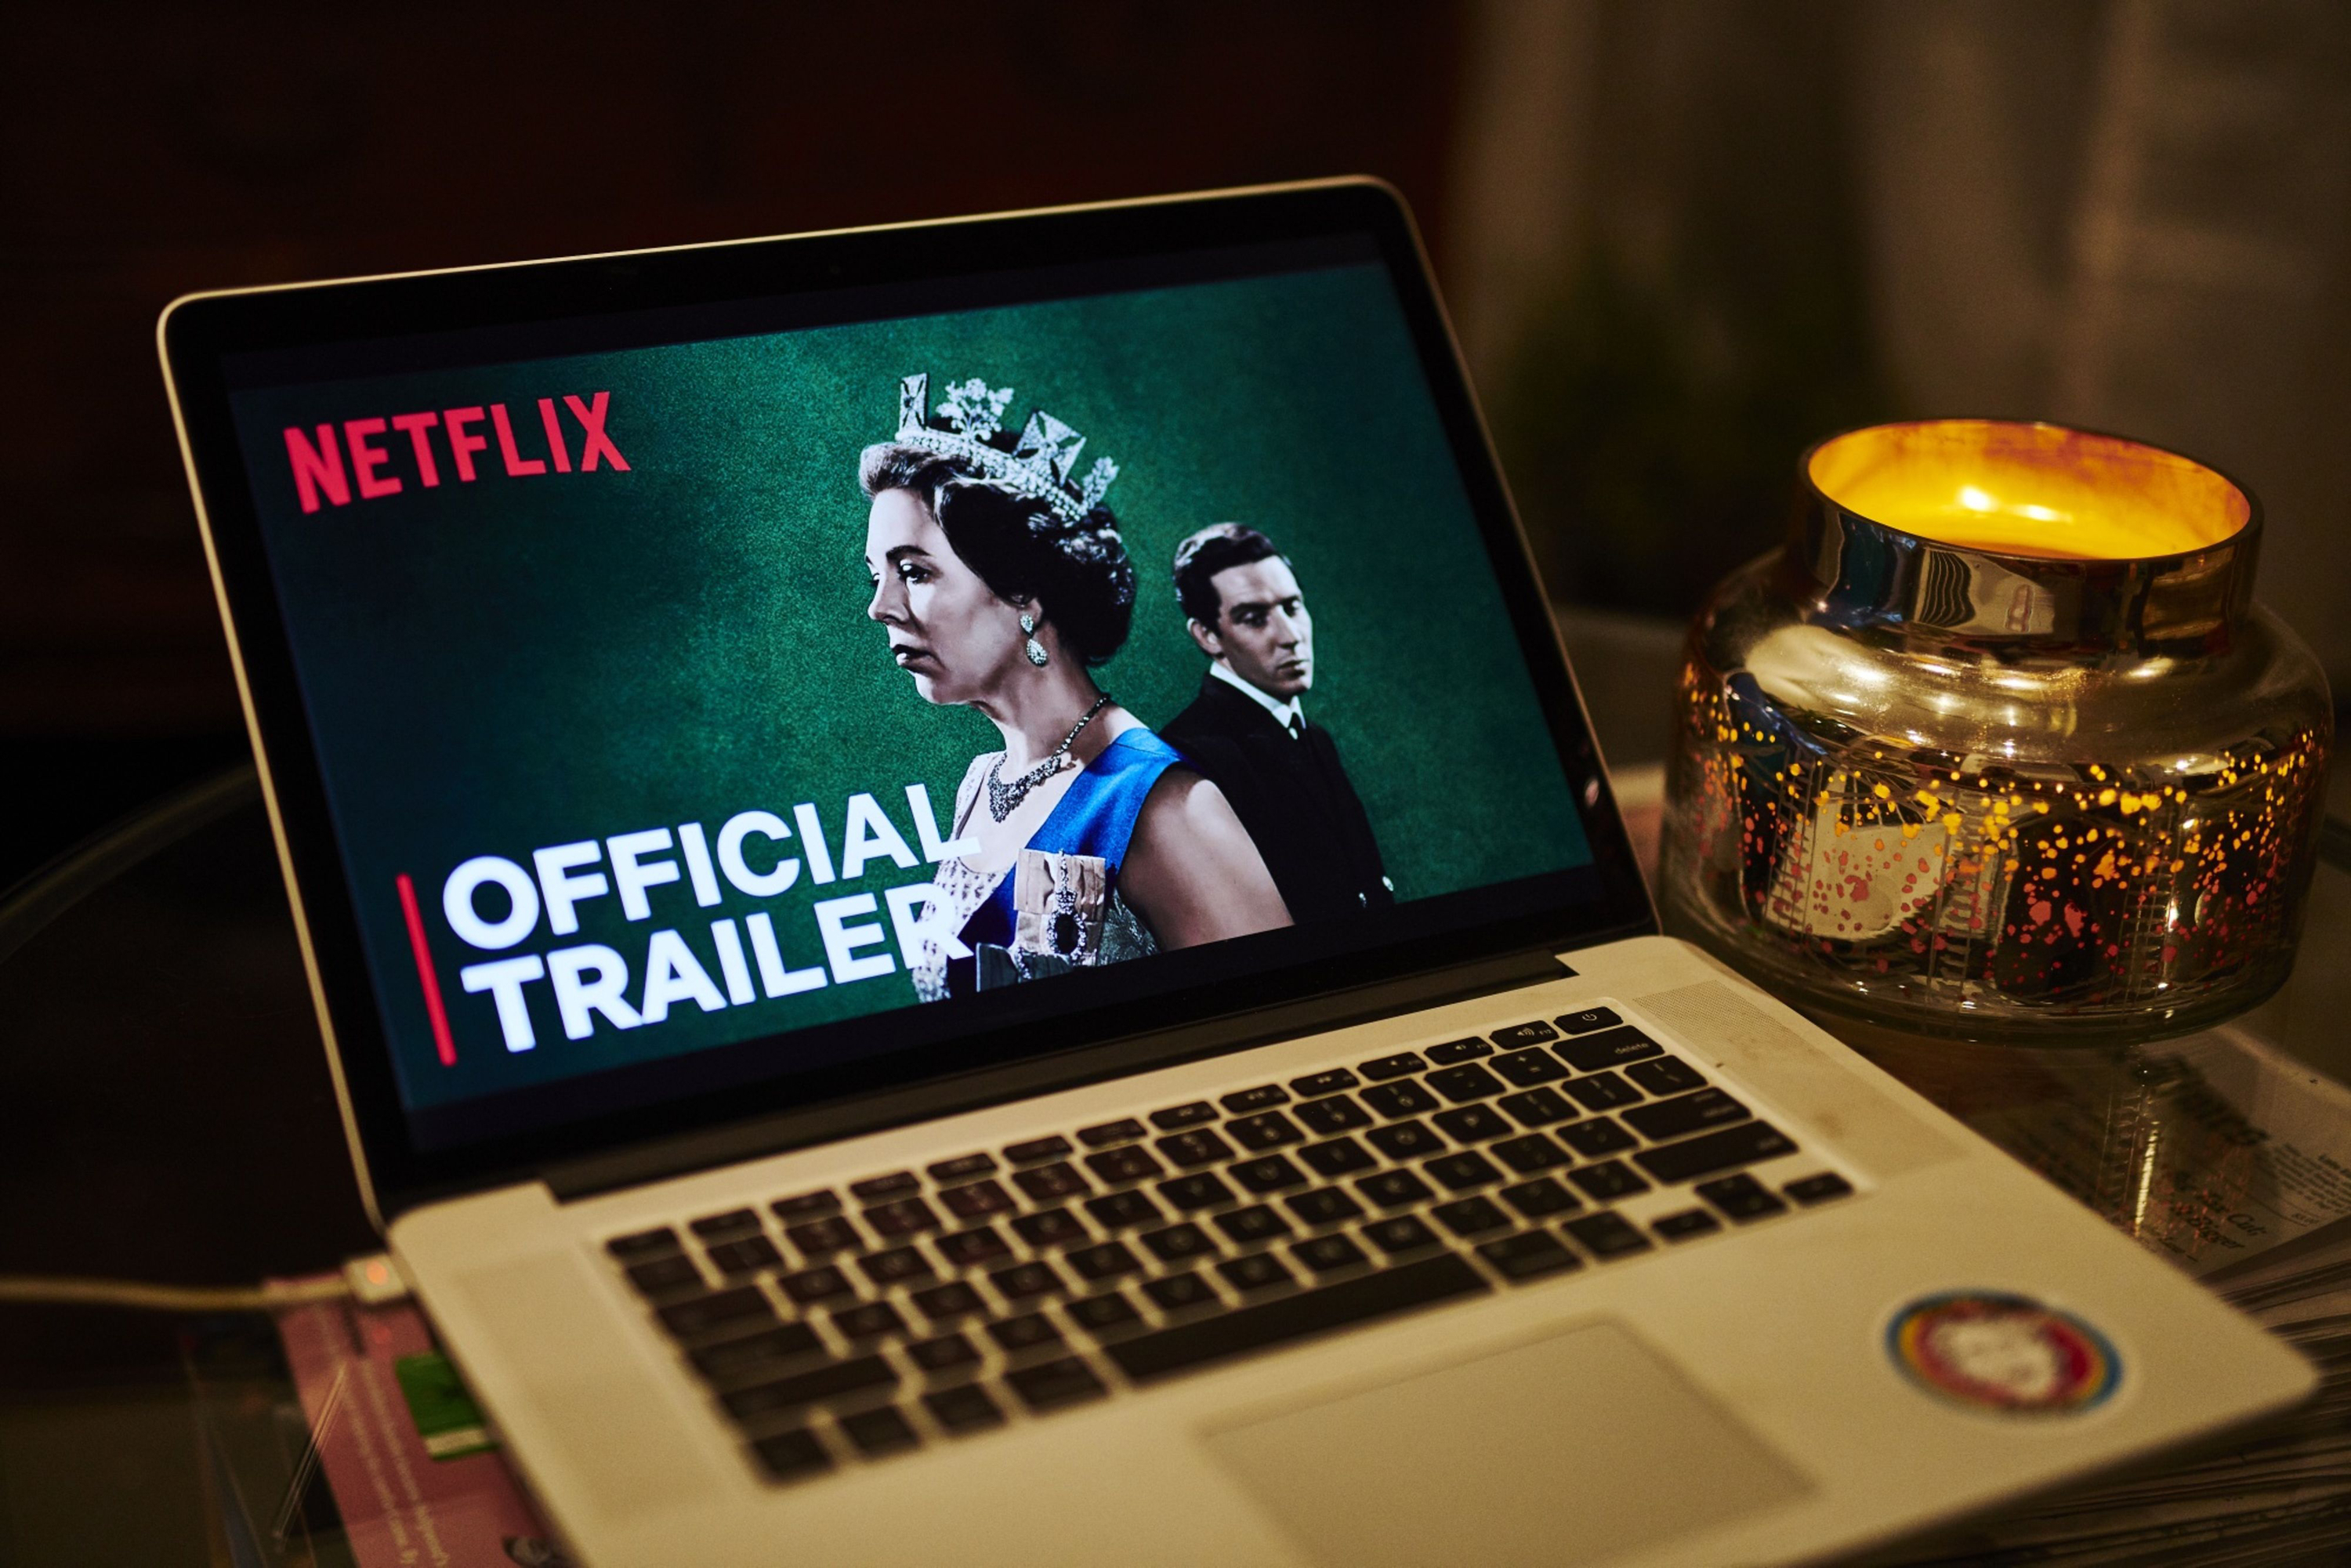 Netflix soars after subscriptions blow past 200 million